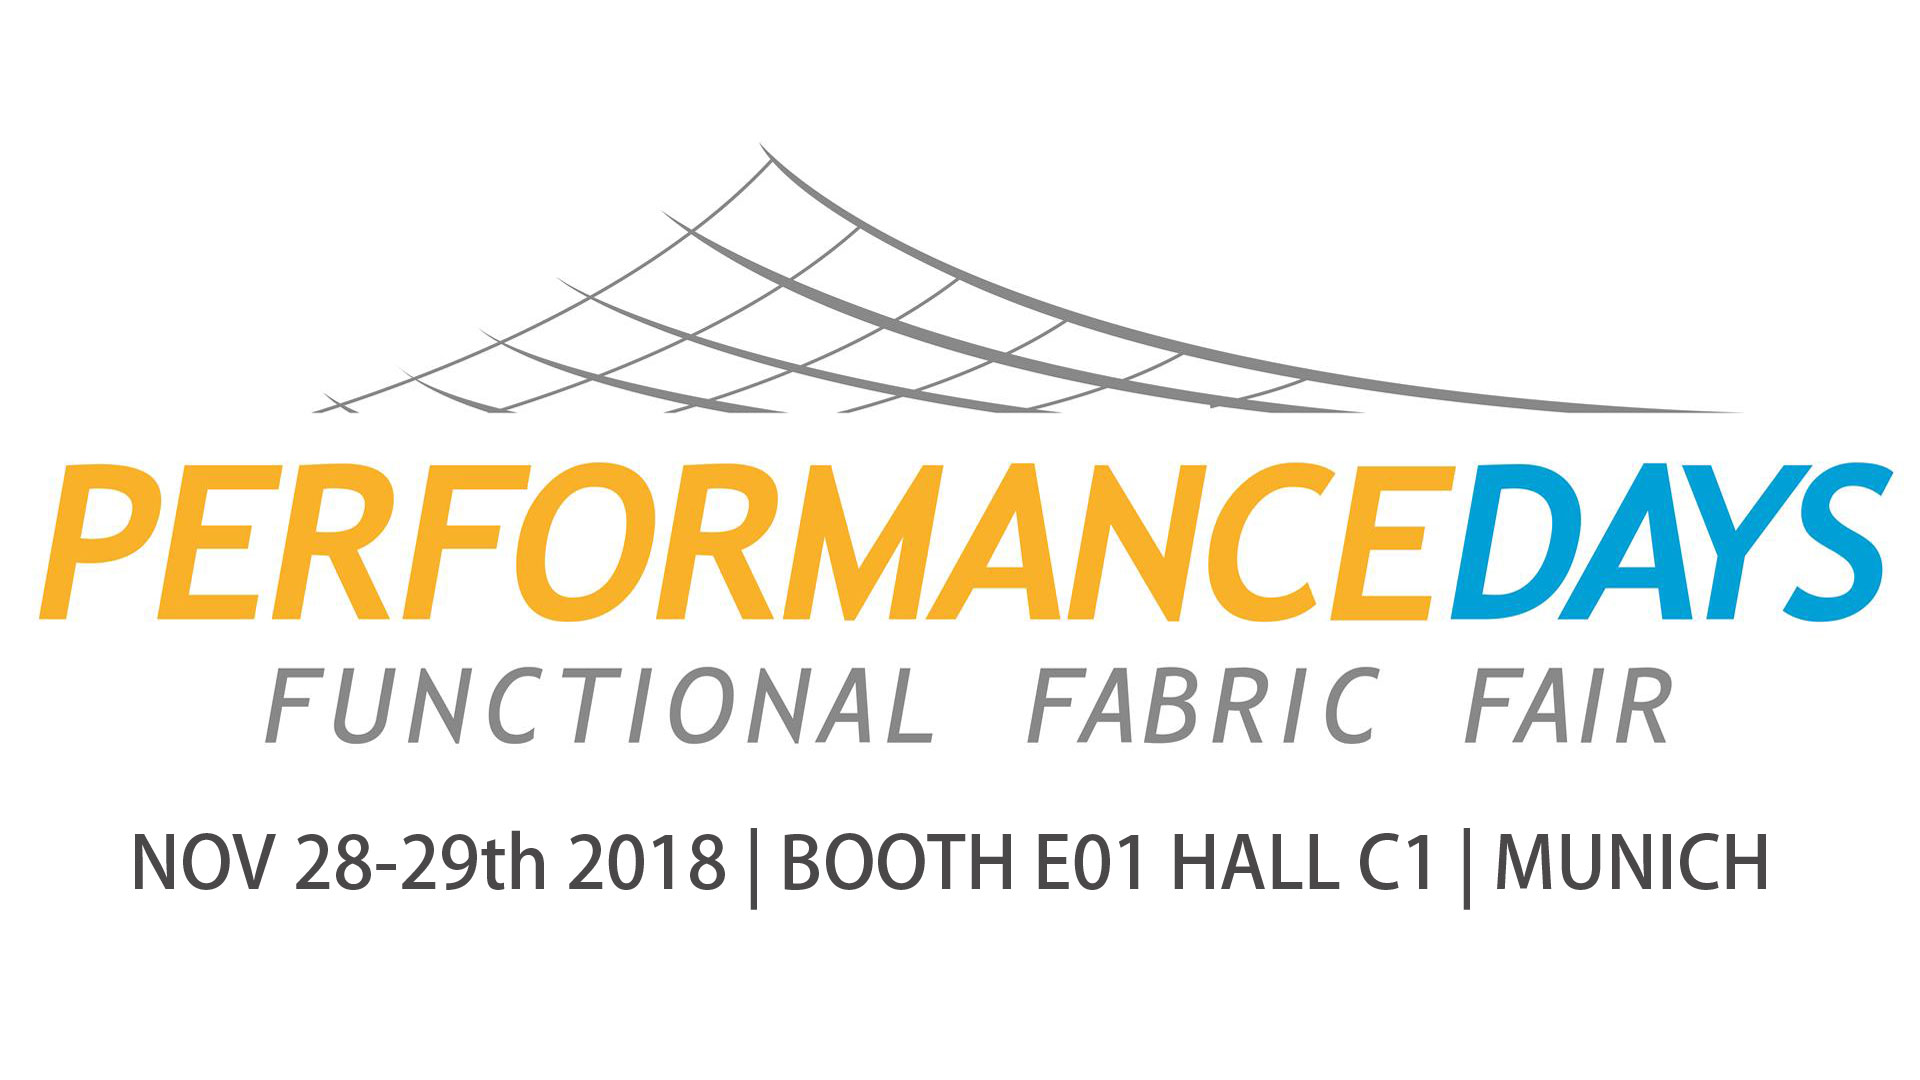 FUNCTIONAL FABRIC SHOW- PERFORMANCE DAYS MUNICH NOV 28-29th 2018